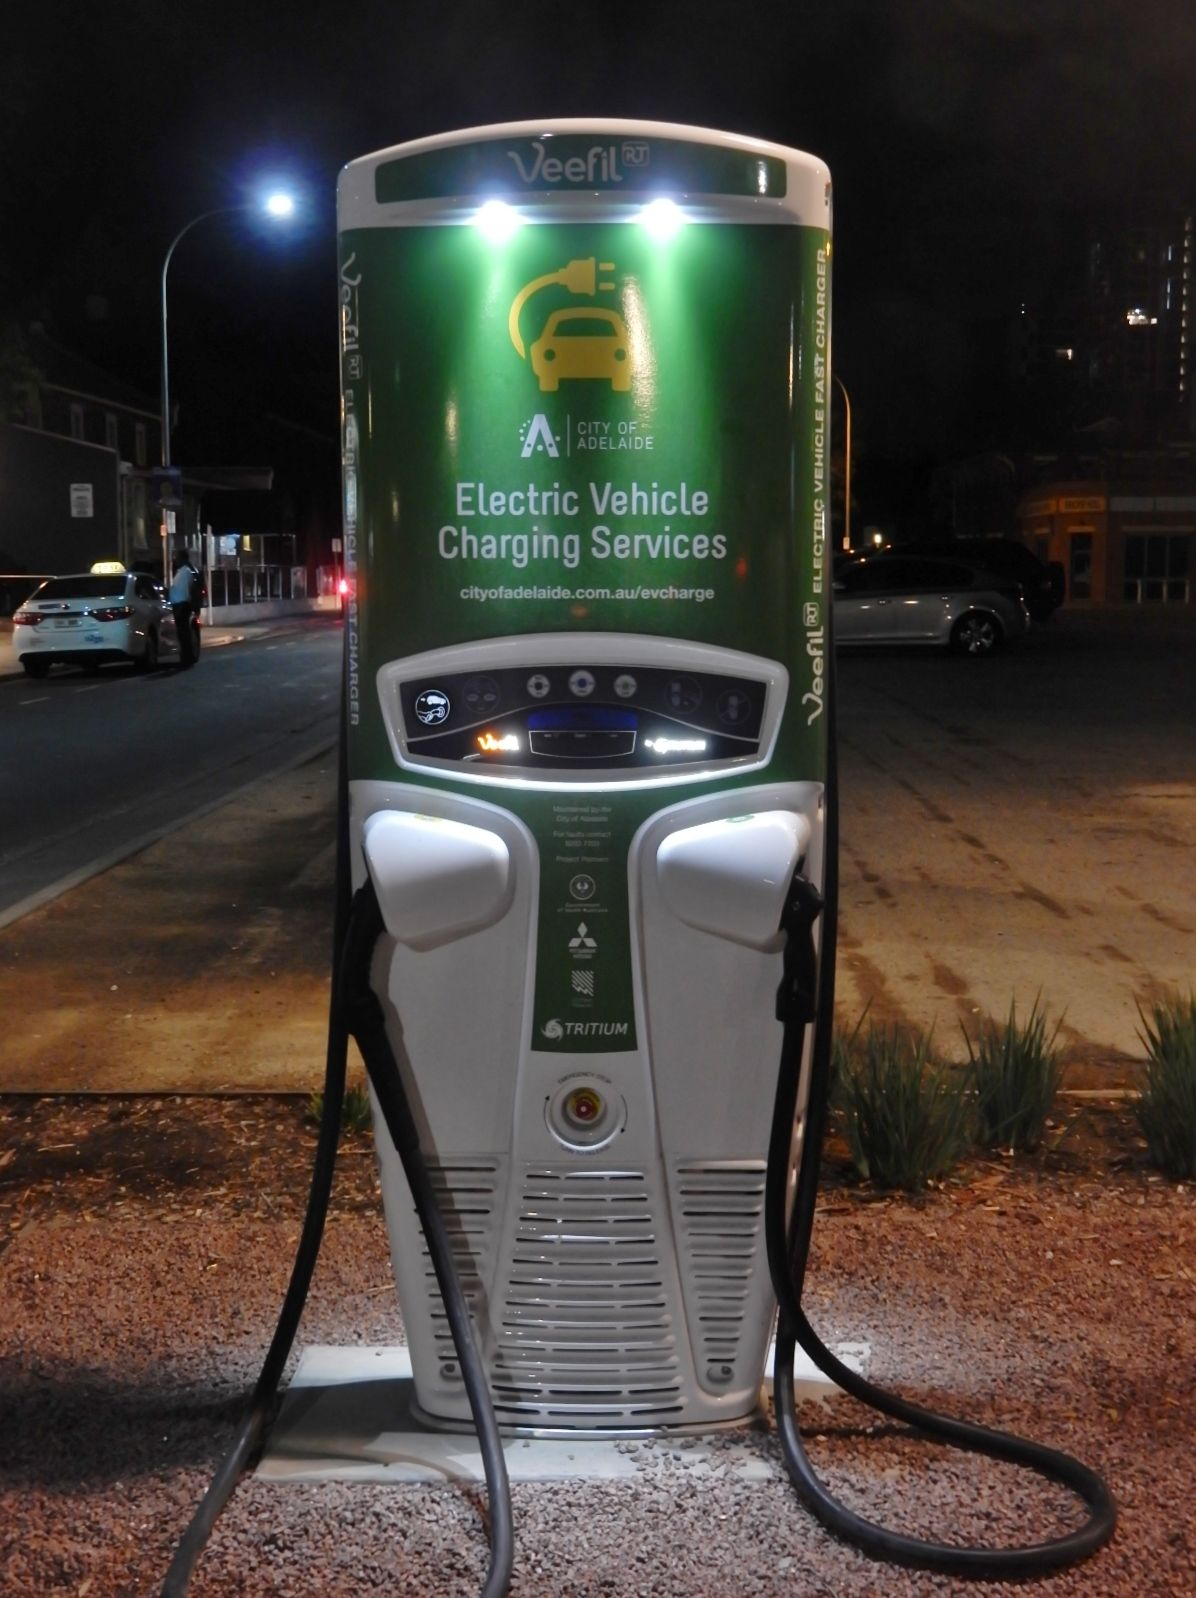 Designing Cost Effective Curbside Electric Vehicle Ev Charging Stations Electric Vehicle Charging Station Ev Charging Stations Electric Vehicle Charging